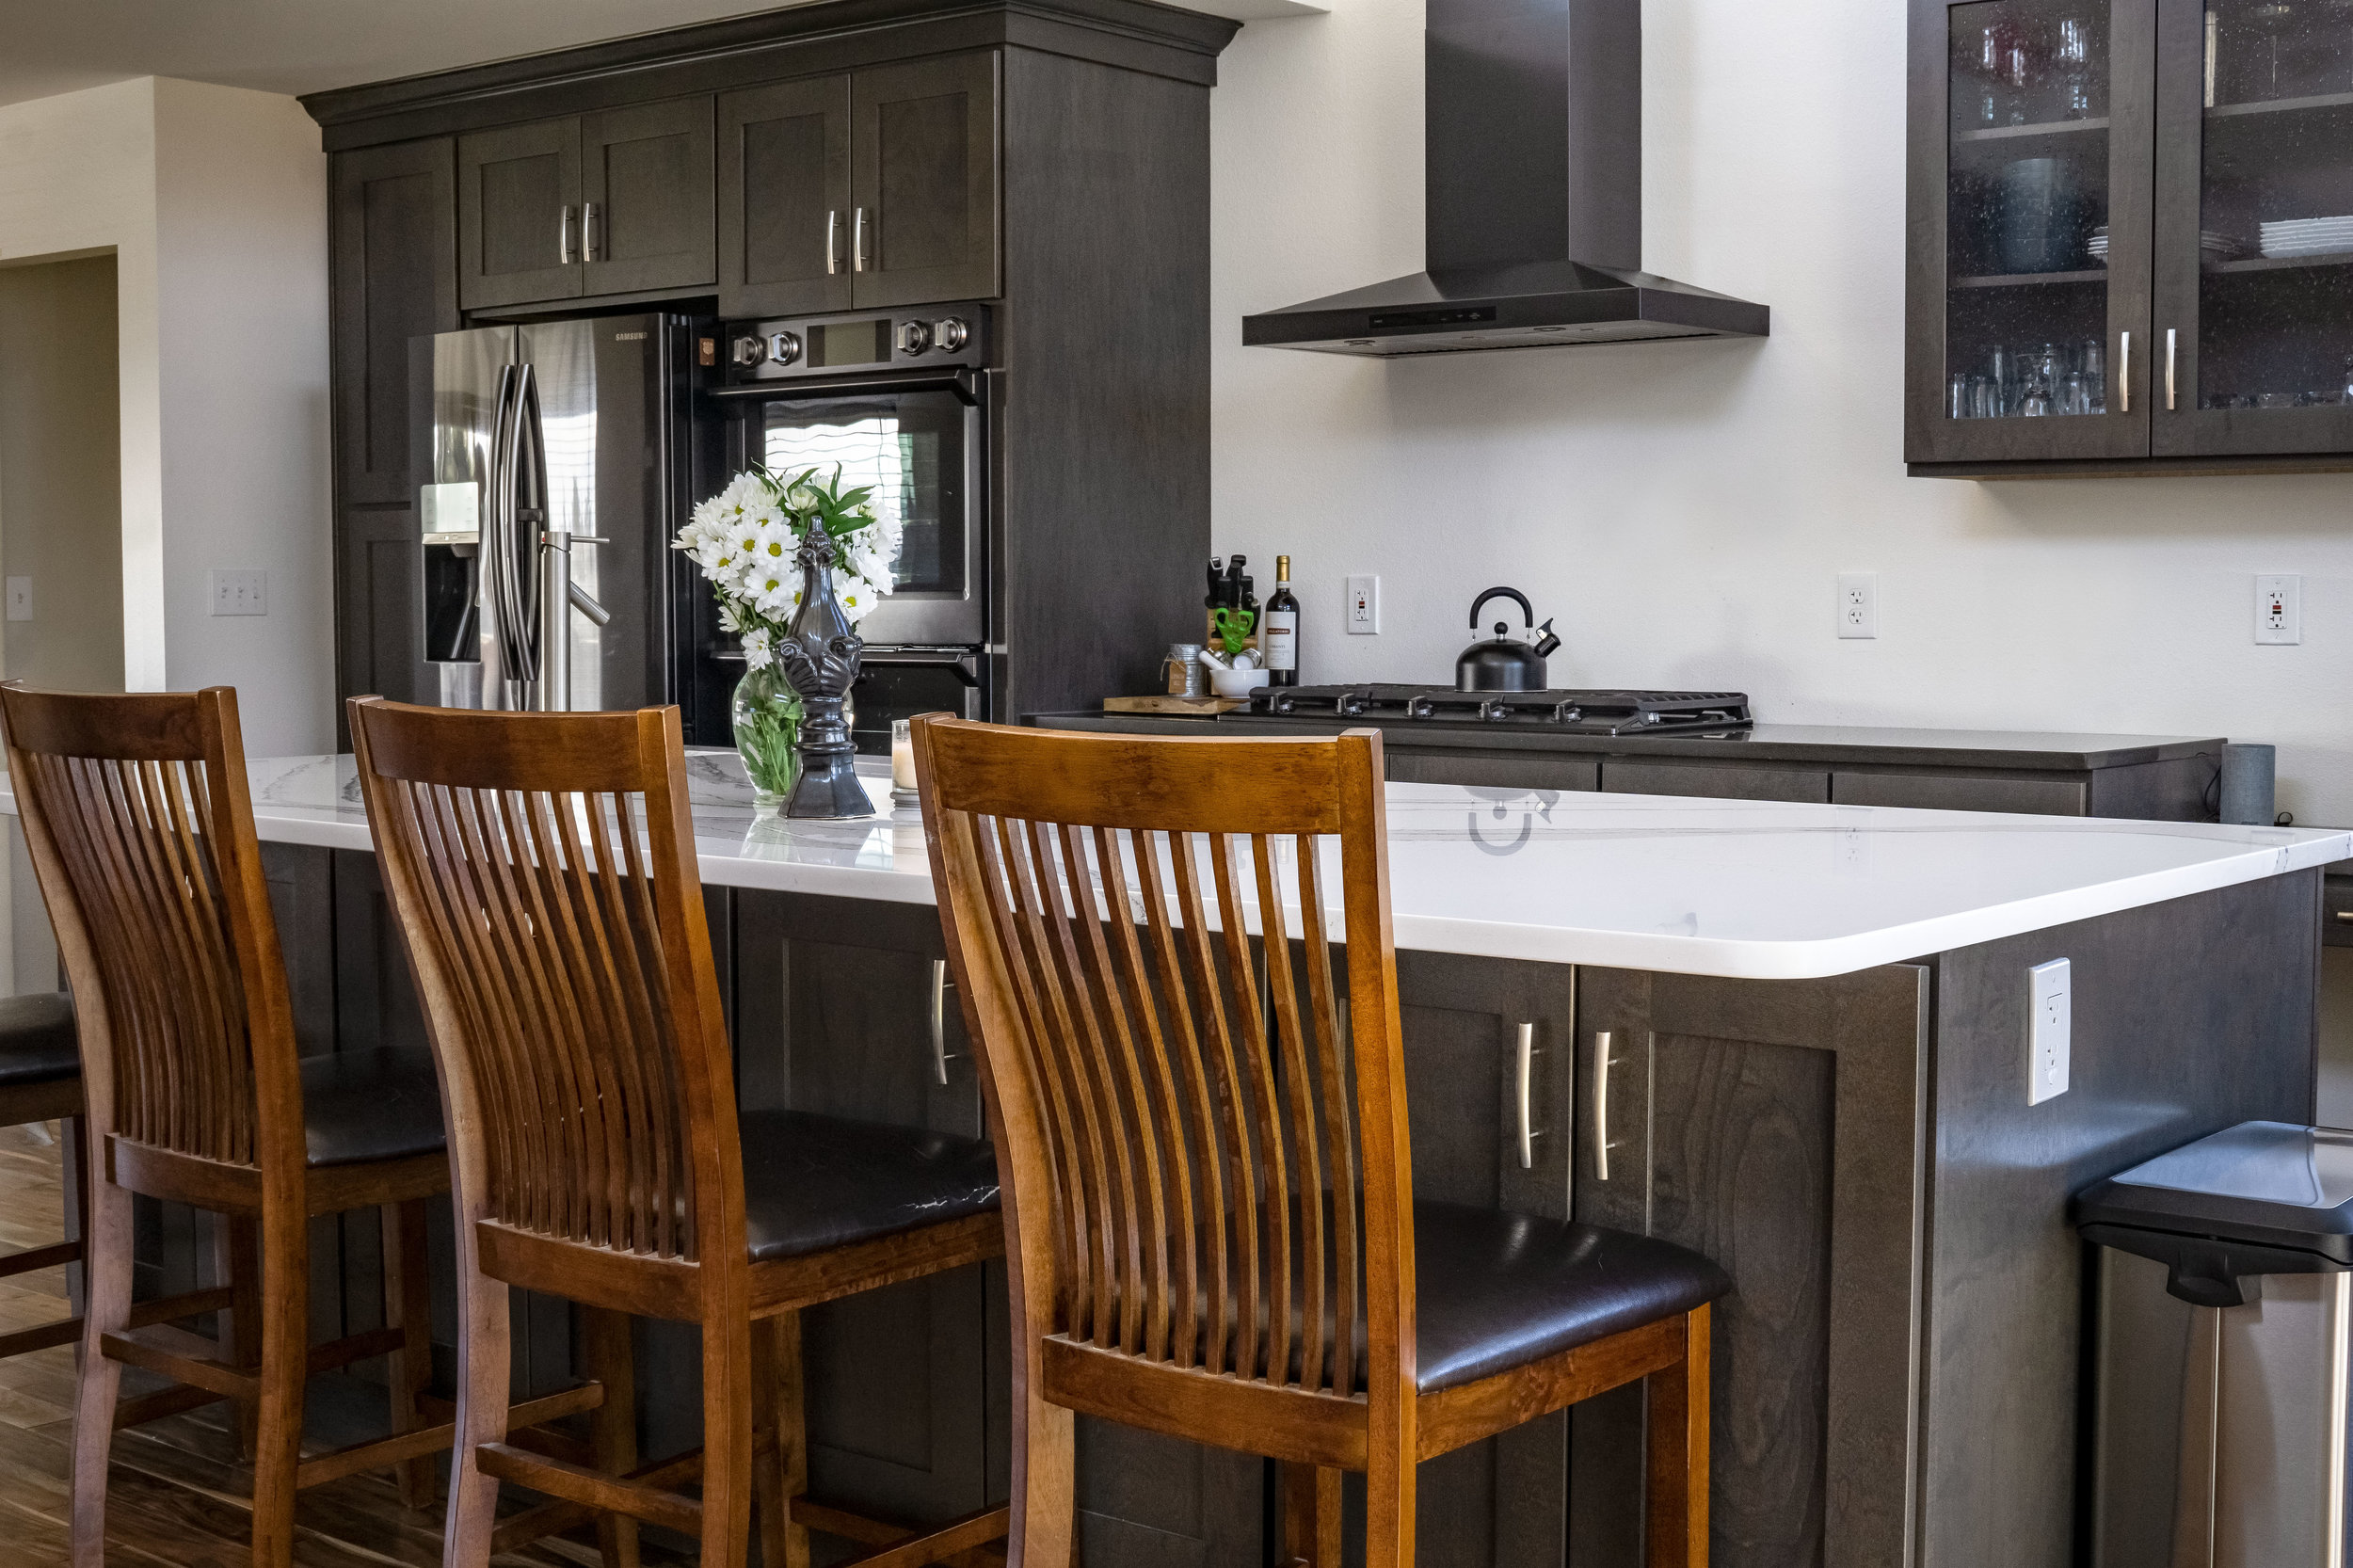 Your Dream Kitchen is Closer than You Think! - Talk with a designer today